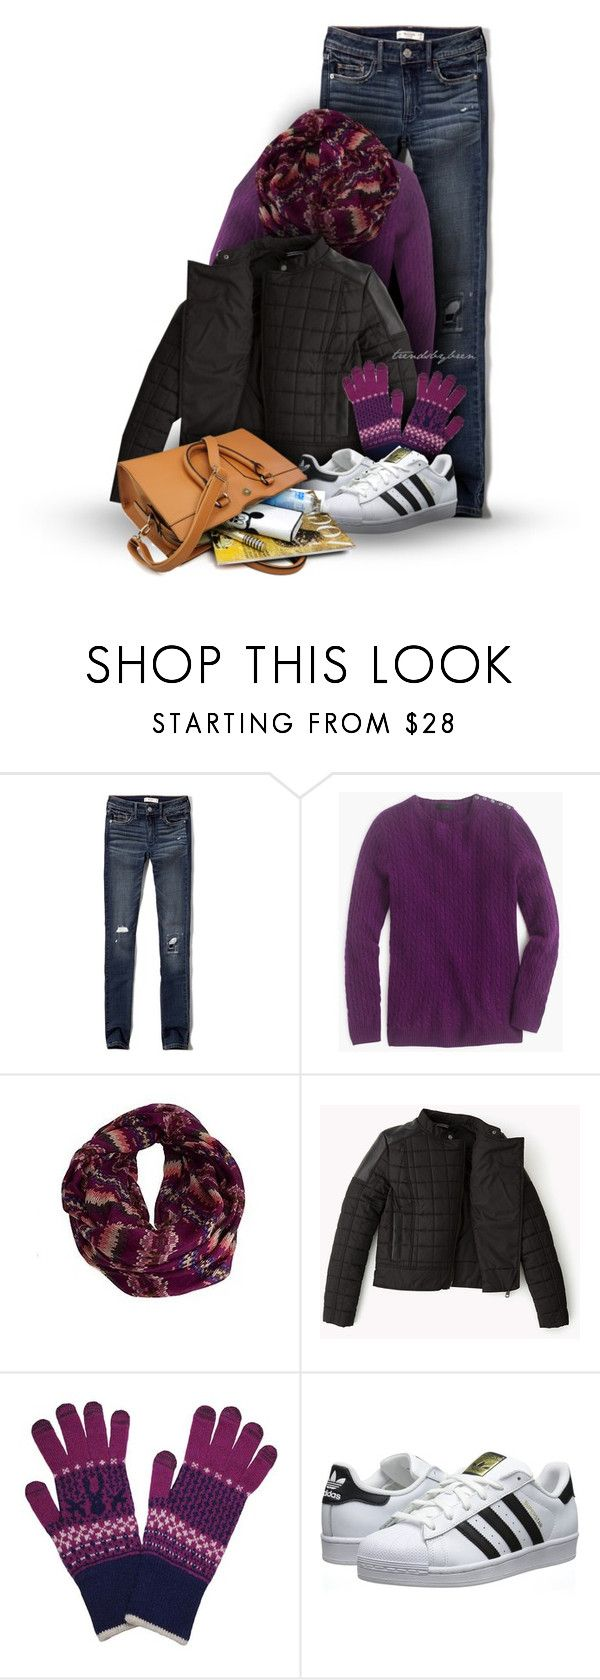 """Plum for winter"" by trendsbybren ❤ liked on Polyvore featuring Abercrombie & Fitch, J.Crew, Urban Outfitters and adidas Originals"